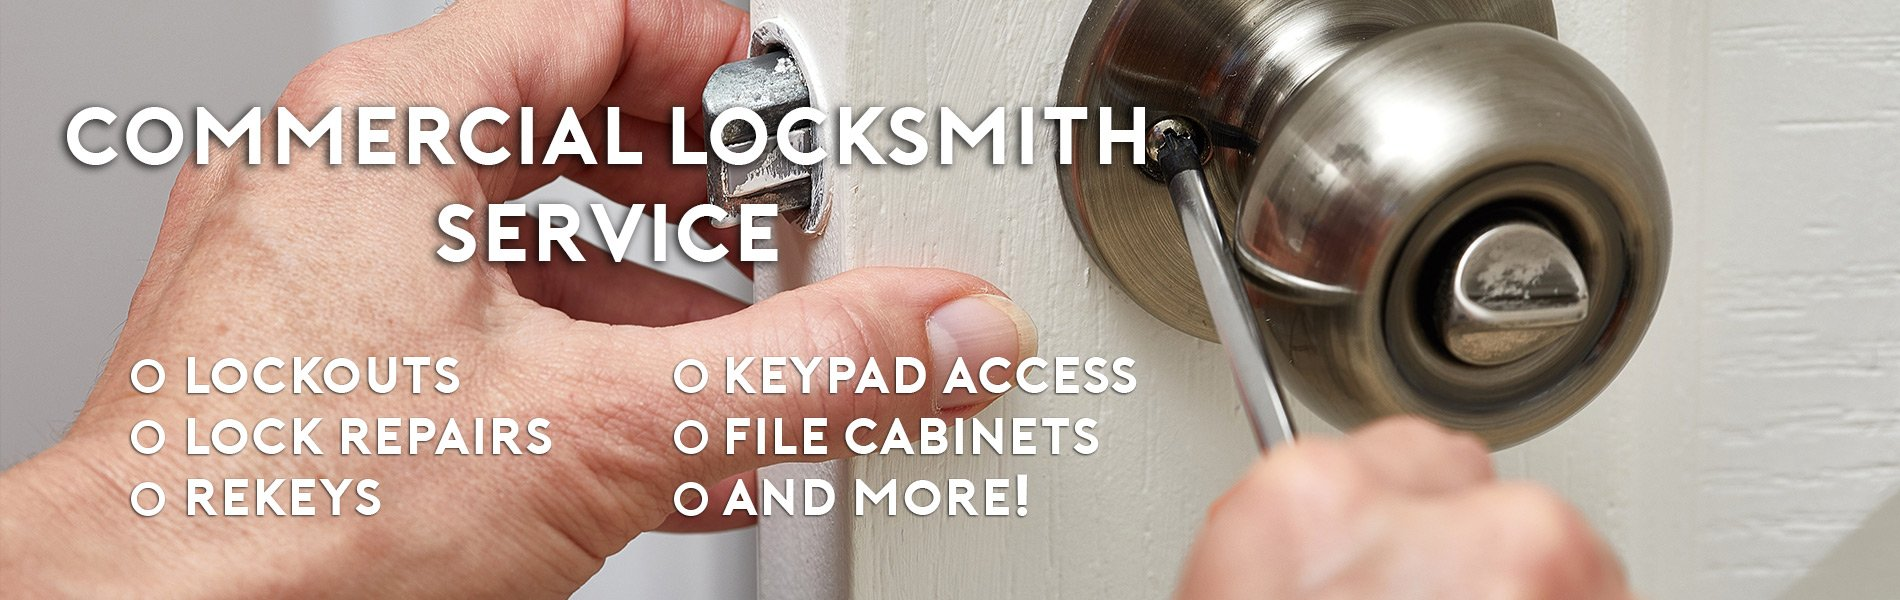 City Locksmith Shop Dallas, TX 214-530-0533